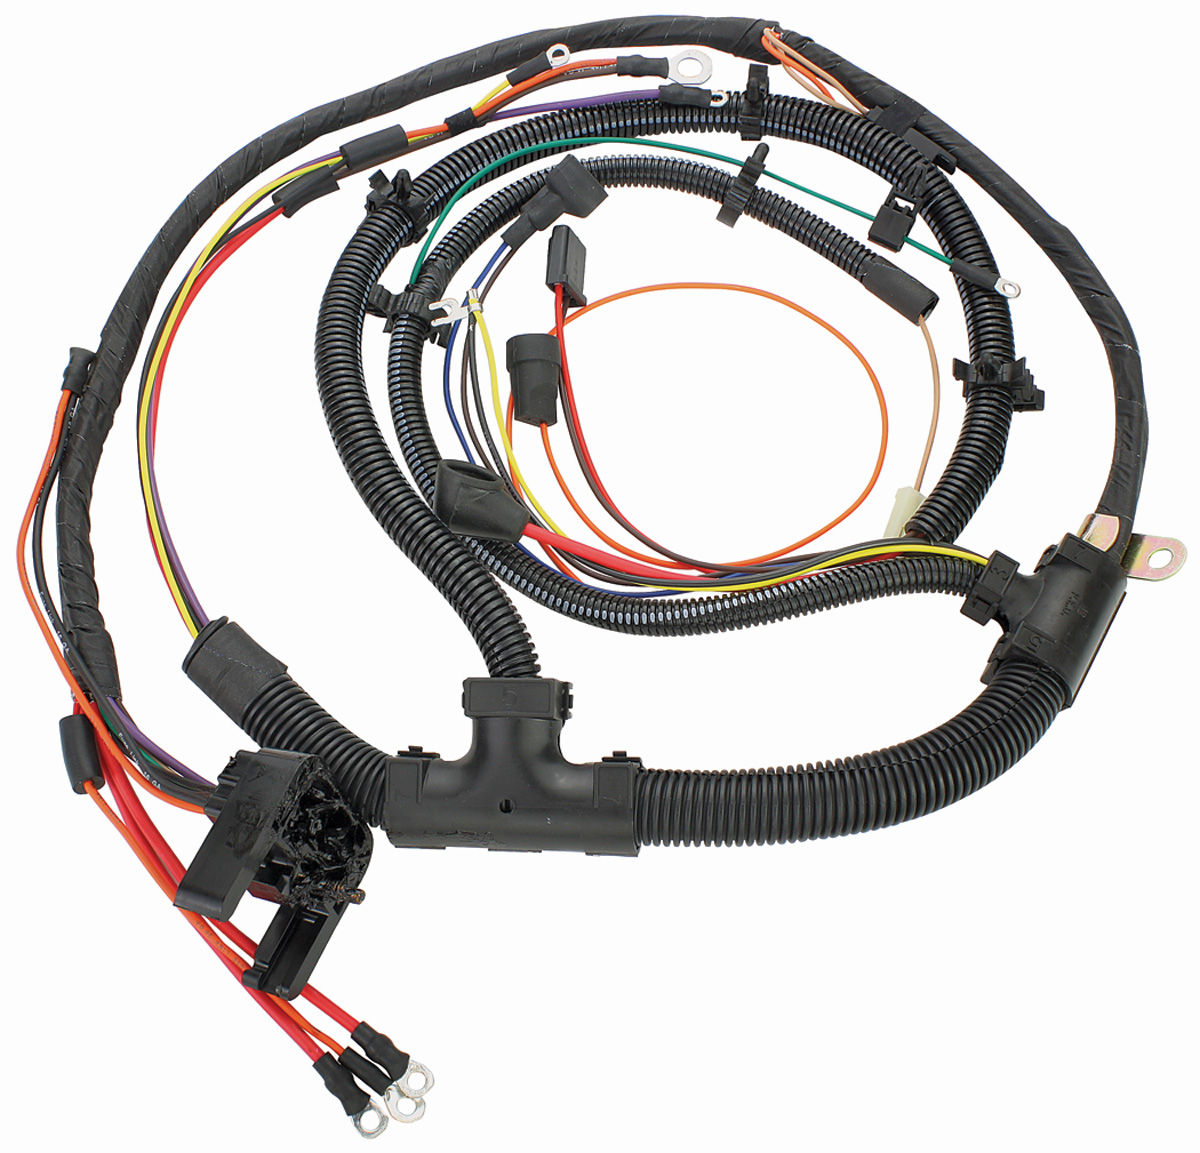 1973 Chevelle Wiring Harness Trusted Diagrams Diagram Mh 74 Engine 396 454 W Auto Trans Gauges 69